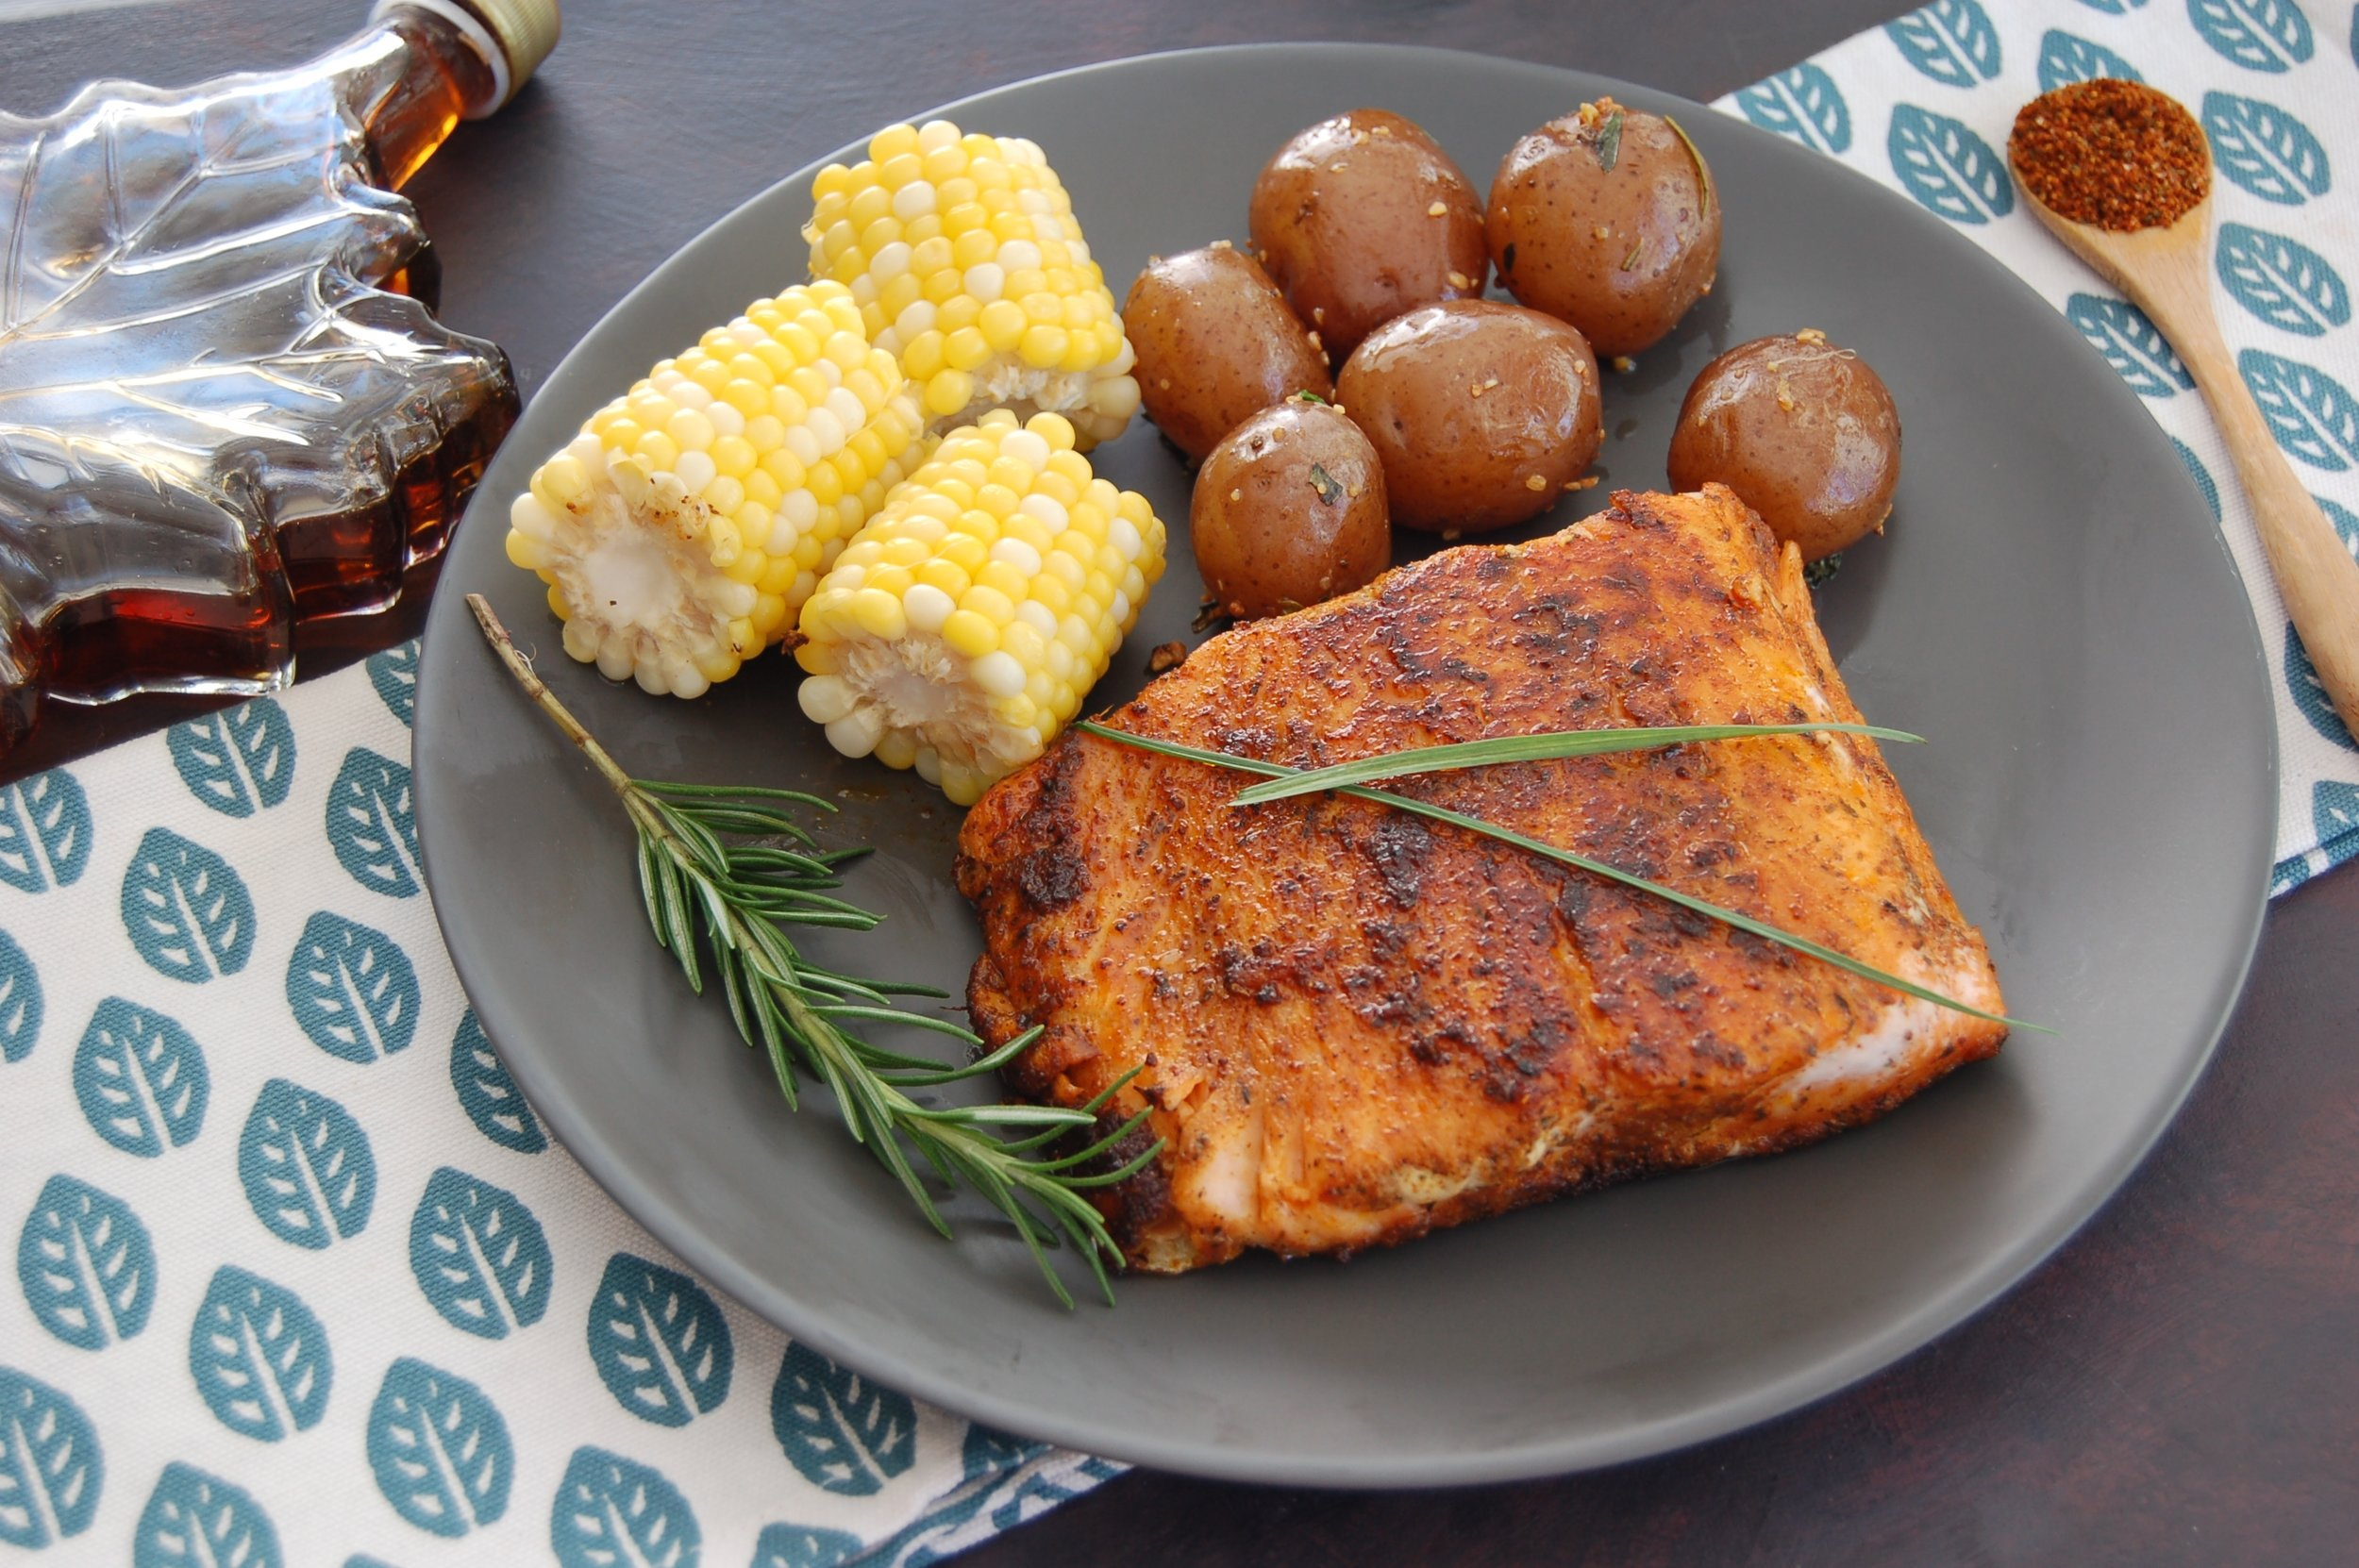 MAPLE GLAZED TANDOORI SALMON - {Made with Arvinda's Tandoori Masala}A classic combination of pairing salmon with the sweetness of caramelized Canadian maple syrup. And here's the Indian twist...with a spicy bite of Arvinda's Tandoori Masala.